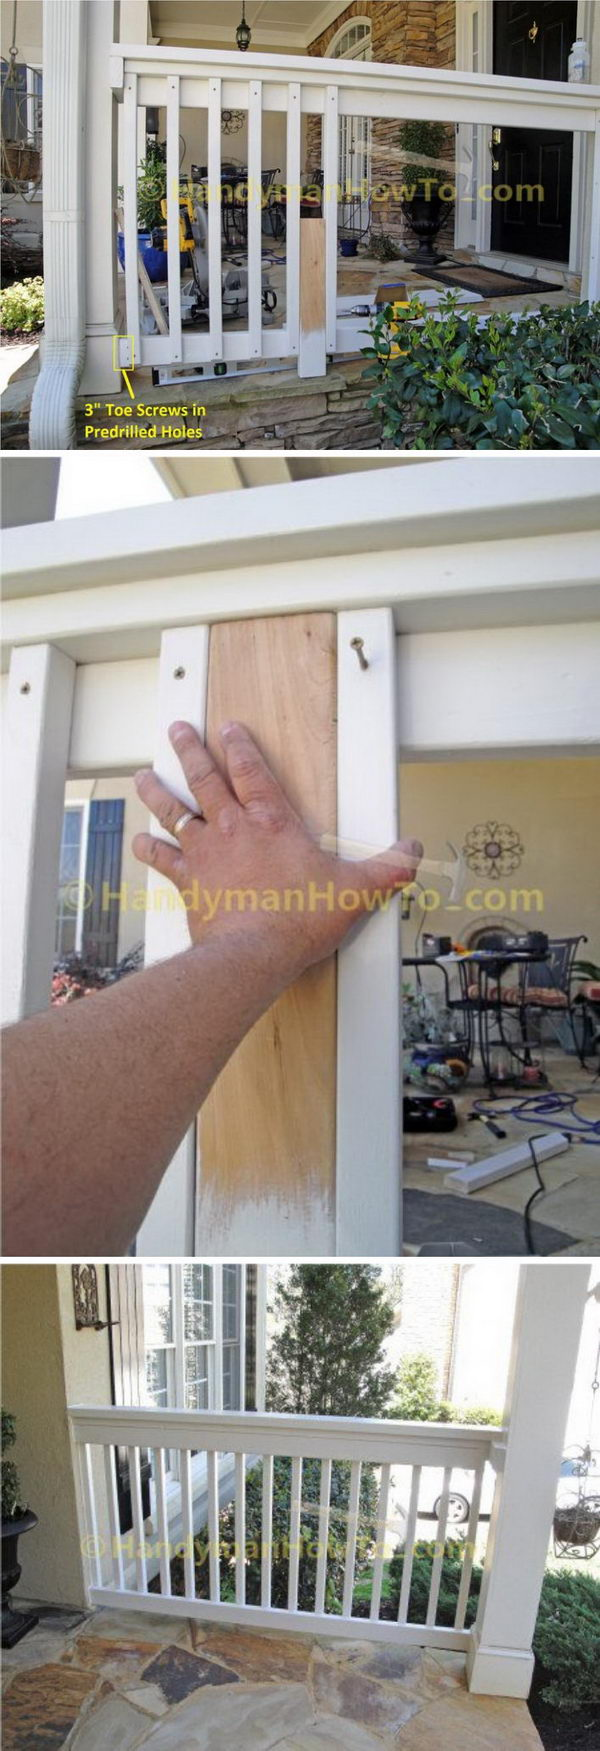 How to make a porch fence building balcony railing over flat roof build porch railing how to build porch railing 7 porch railings how solutioingenieria Gallery